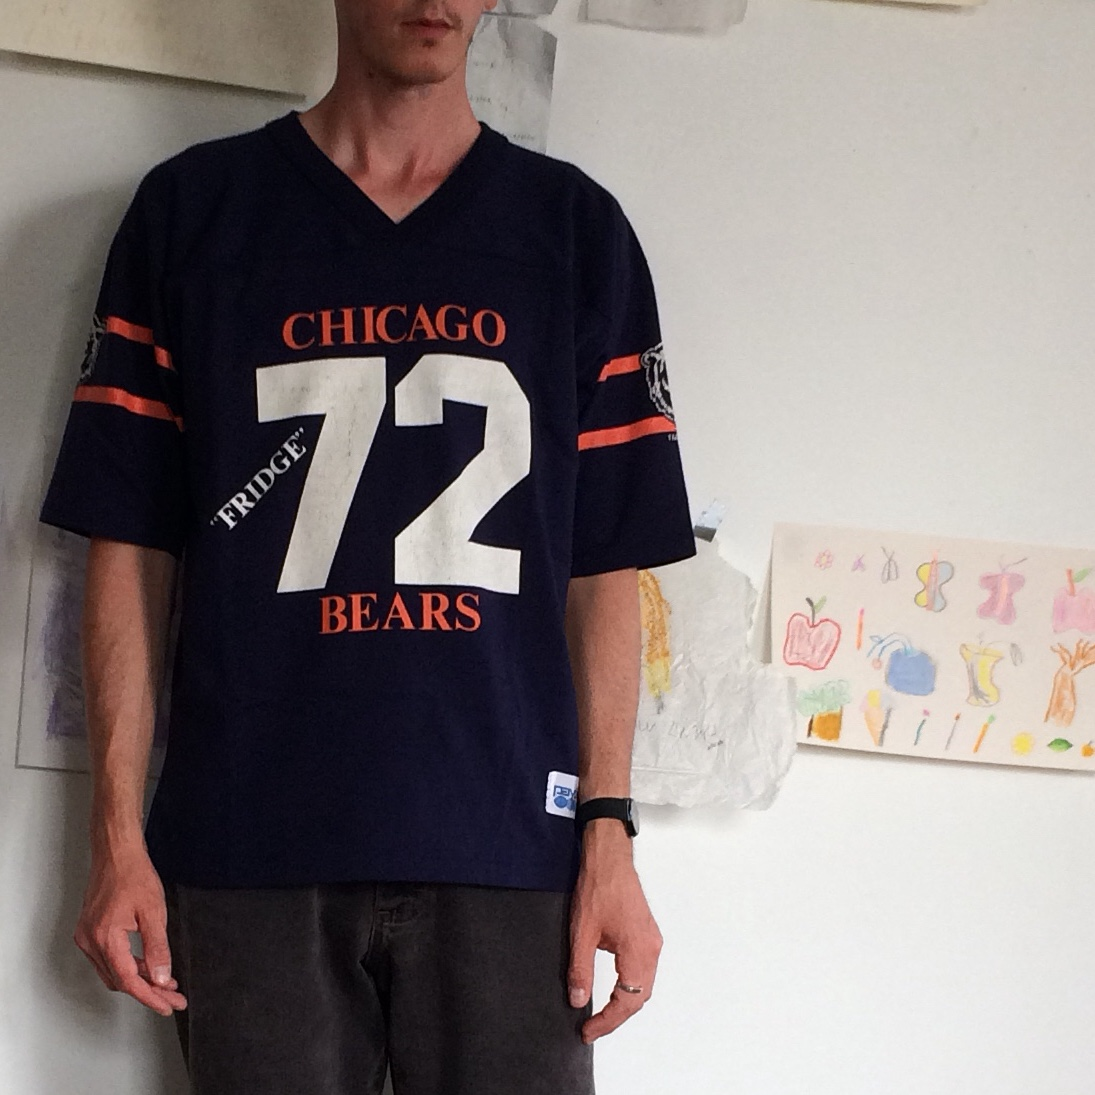 sports shoes 3c8e9 70c0d Vintage Chicago Bears Jersey T-shirt. #72 William... - Depop